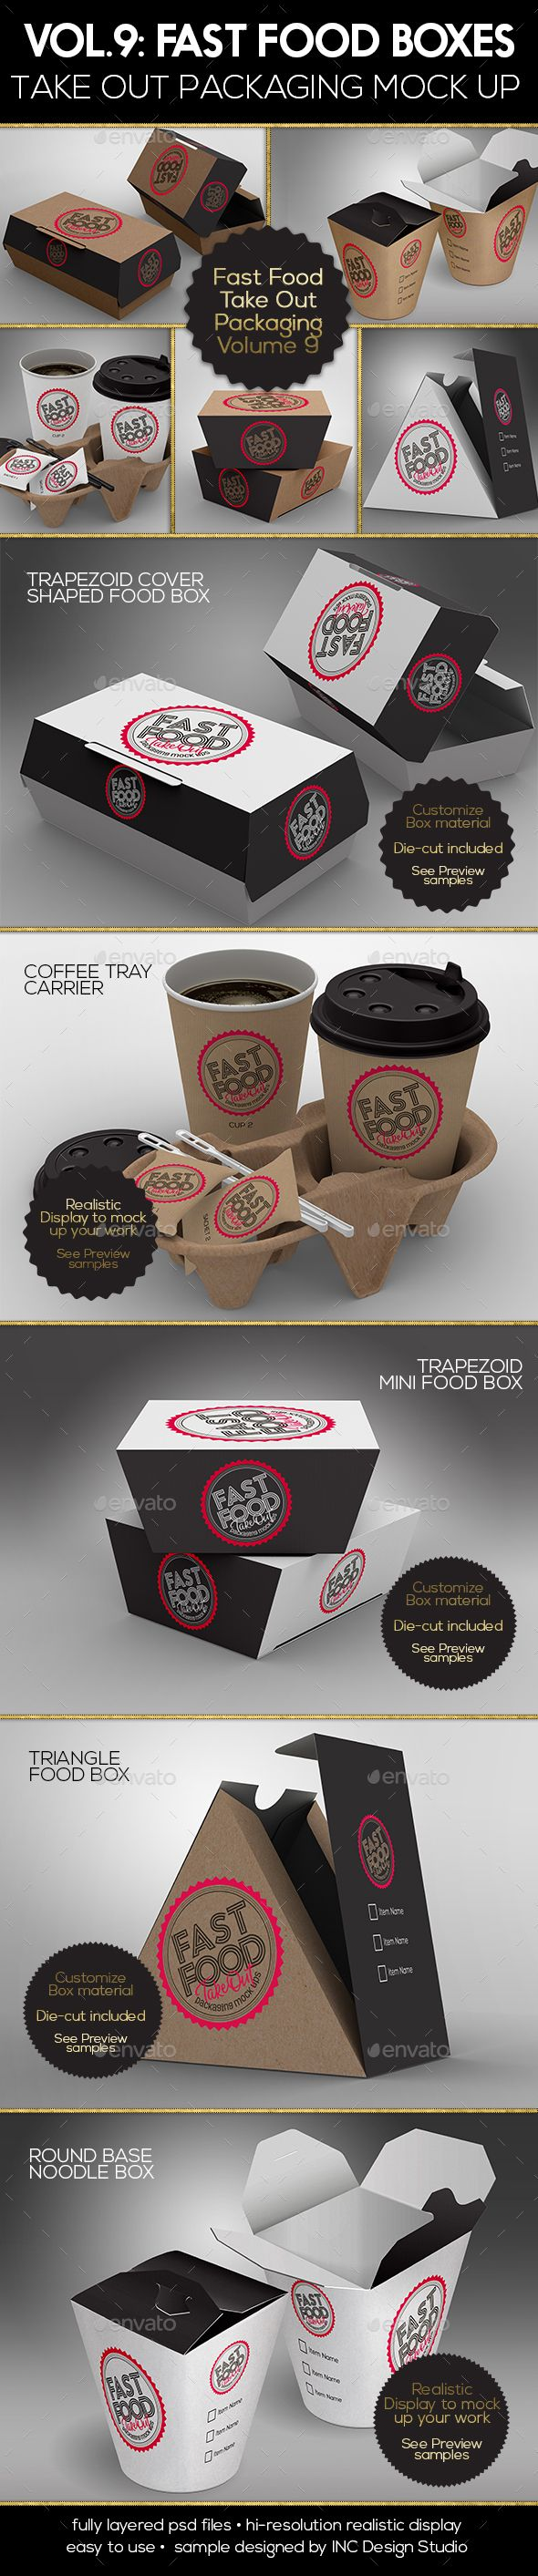 Fast Food Boxes Vol.9: Take Out Packaging Mock Ups by ina717 Volume 9: FAST FOOD TAKE OUT PACKAGING SERIES Five ( 5 ) PSD mock-ups and 5 different type of PackagingTrapezoid Cover Shaped Boxe